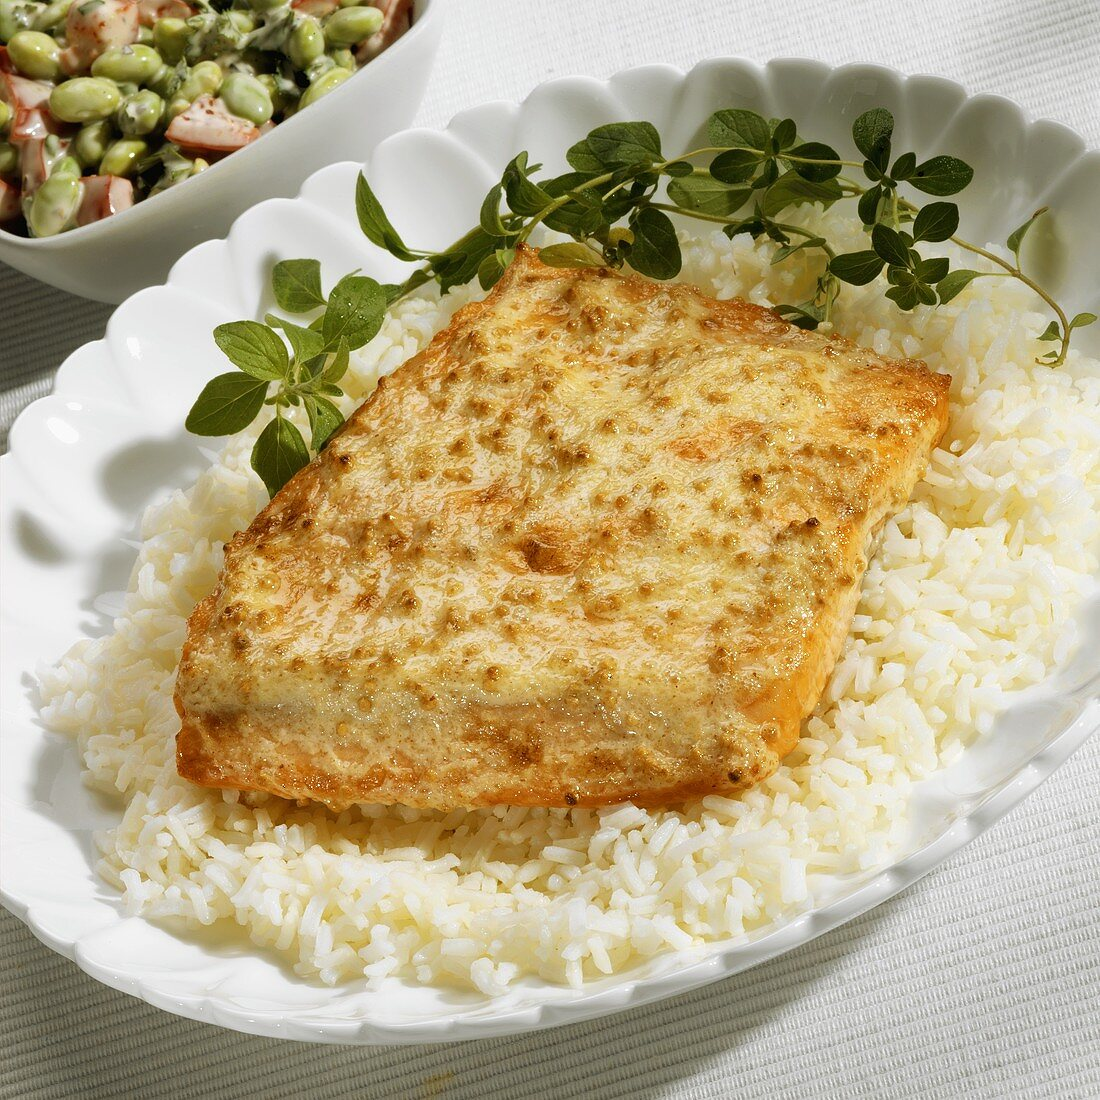 Salmon with mustard crust and oregano on bed of rice